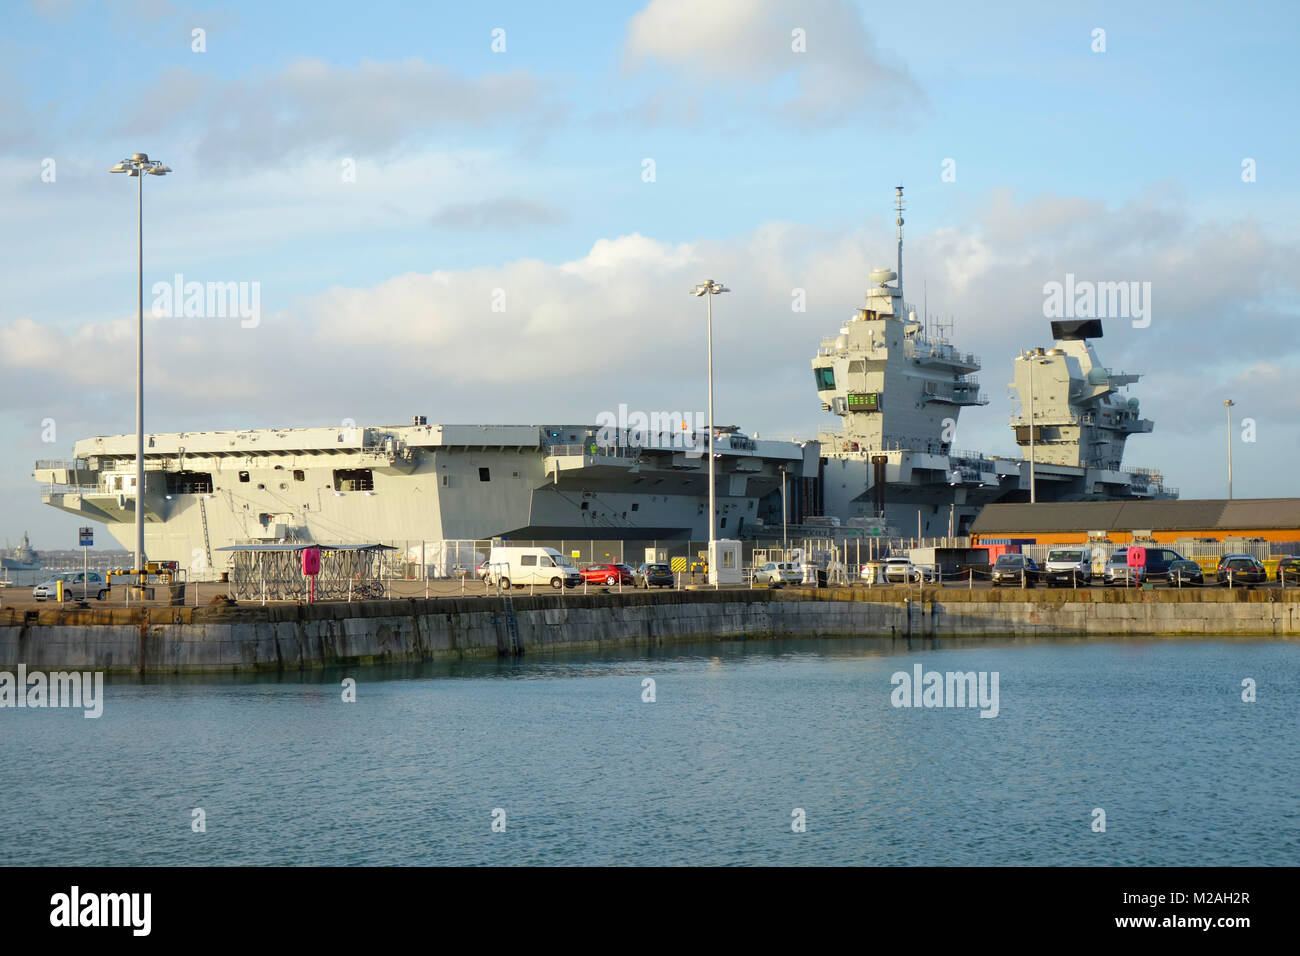 HMS Queen Elizabeth - Aircraft Carrier docked in HM Naval Base Portsmouth, Hampshire, United Kingdom - Stock Image